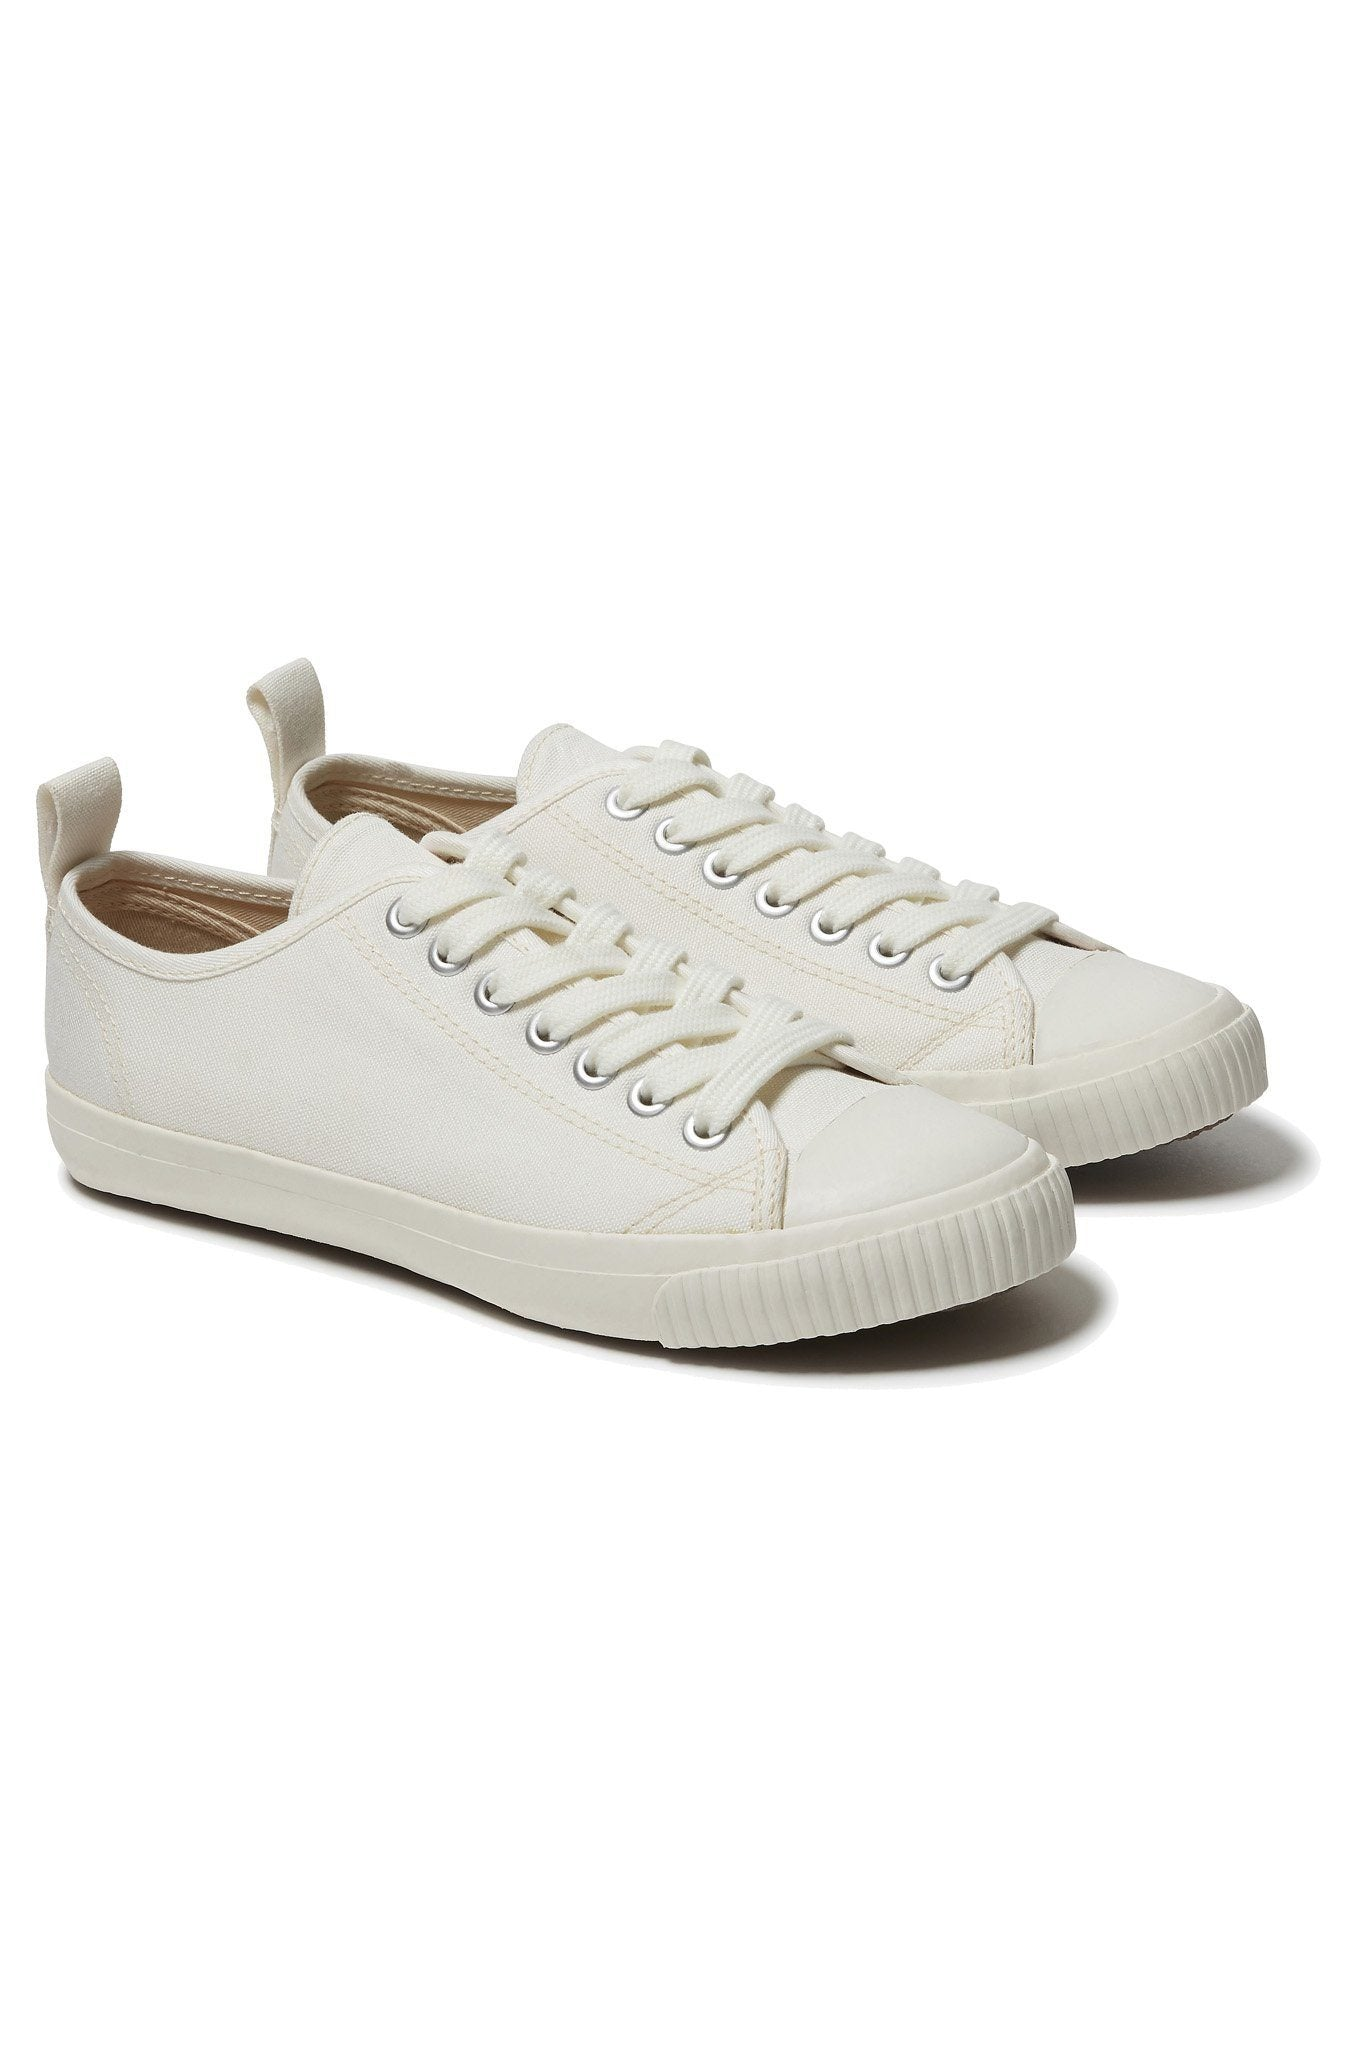 ECO SNEAKO - CLASSIC Mens White - Komodo Fashion